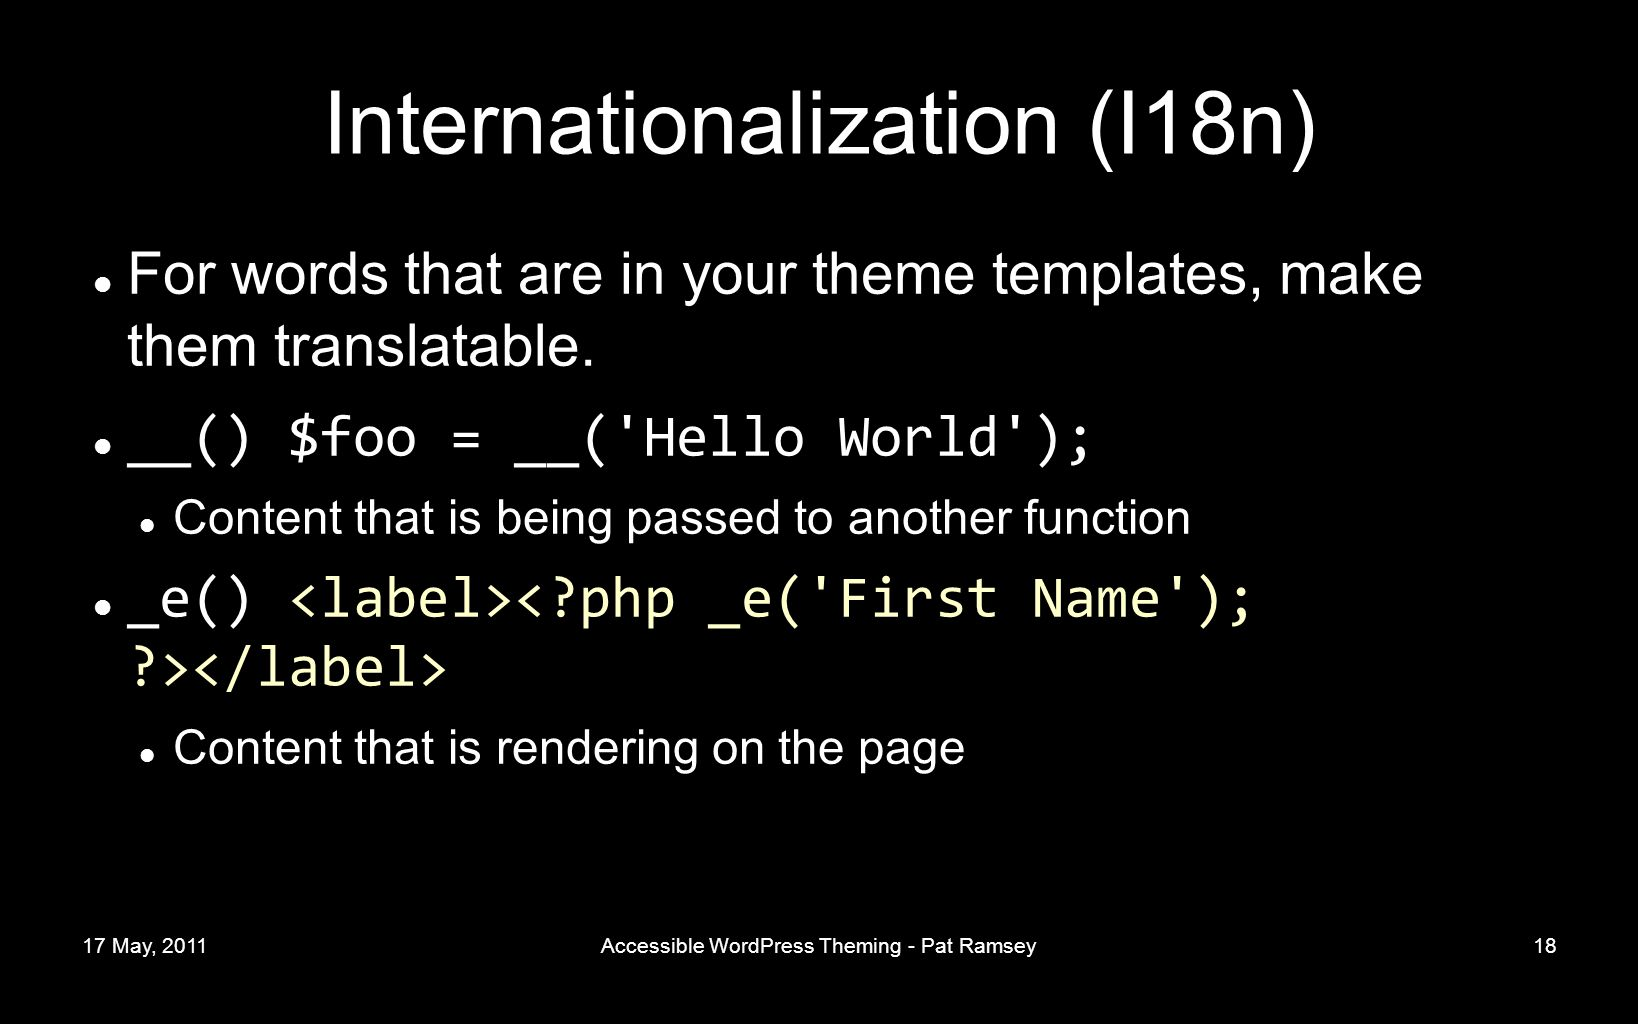 17 May, 2011Accessible WordPress Theming - Pat Ramsey18 Internationalization (I18n) For words that are in your theme templates, make them translatable.